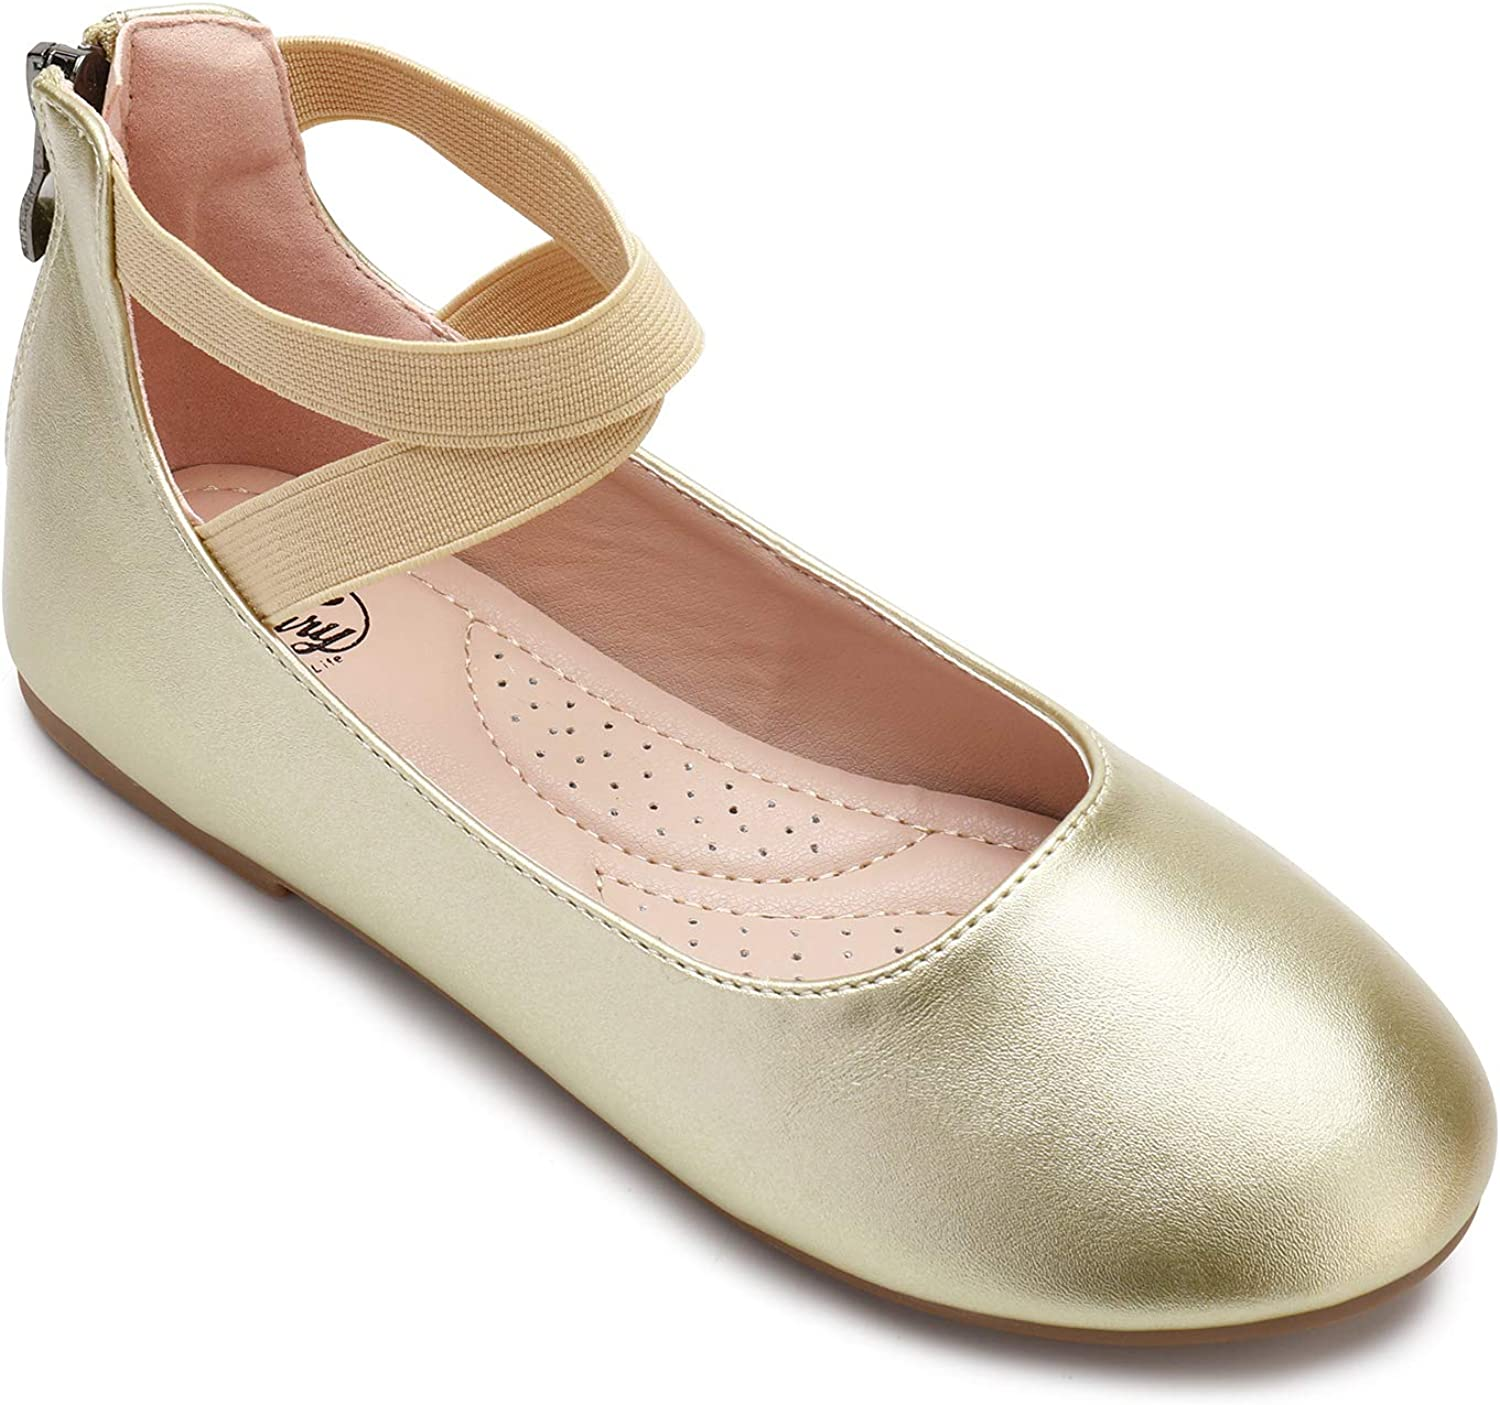 Pink New Ankle Strappy Point Toe Slip On Women Ballet Flats Shoes Size 8